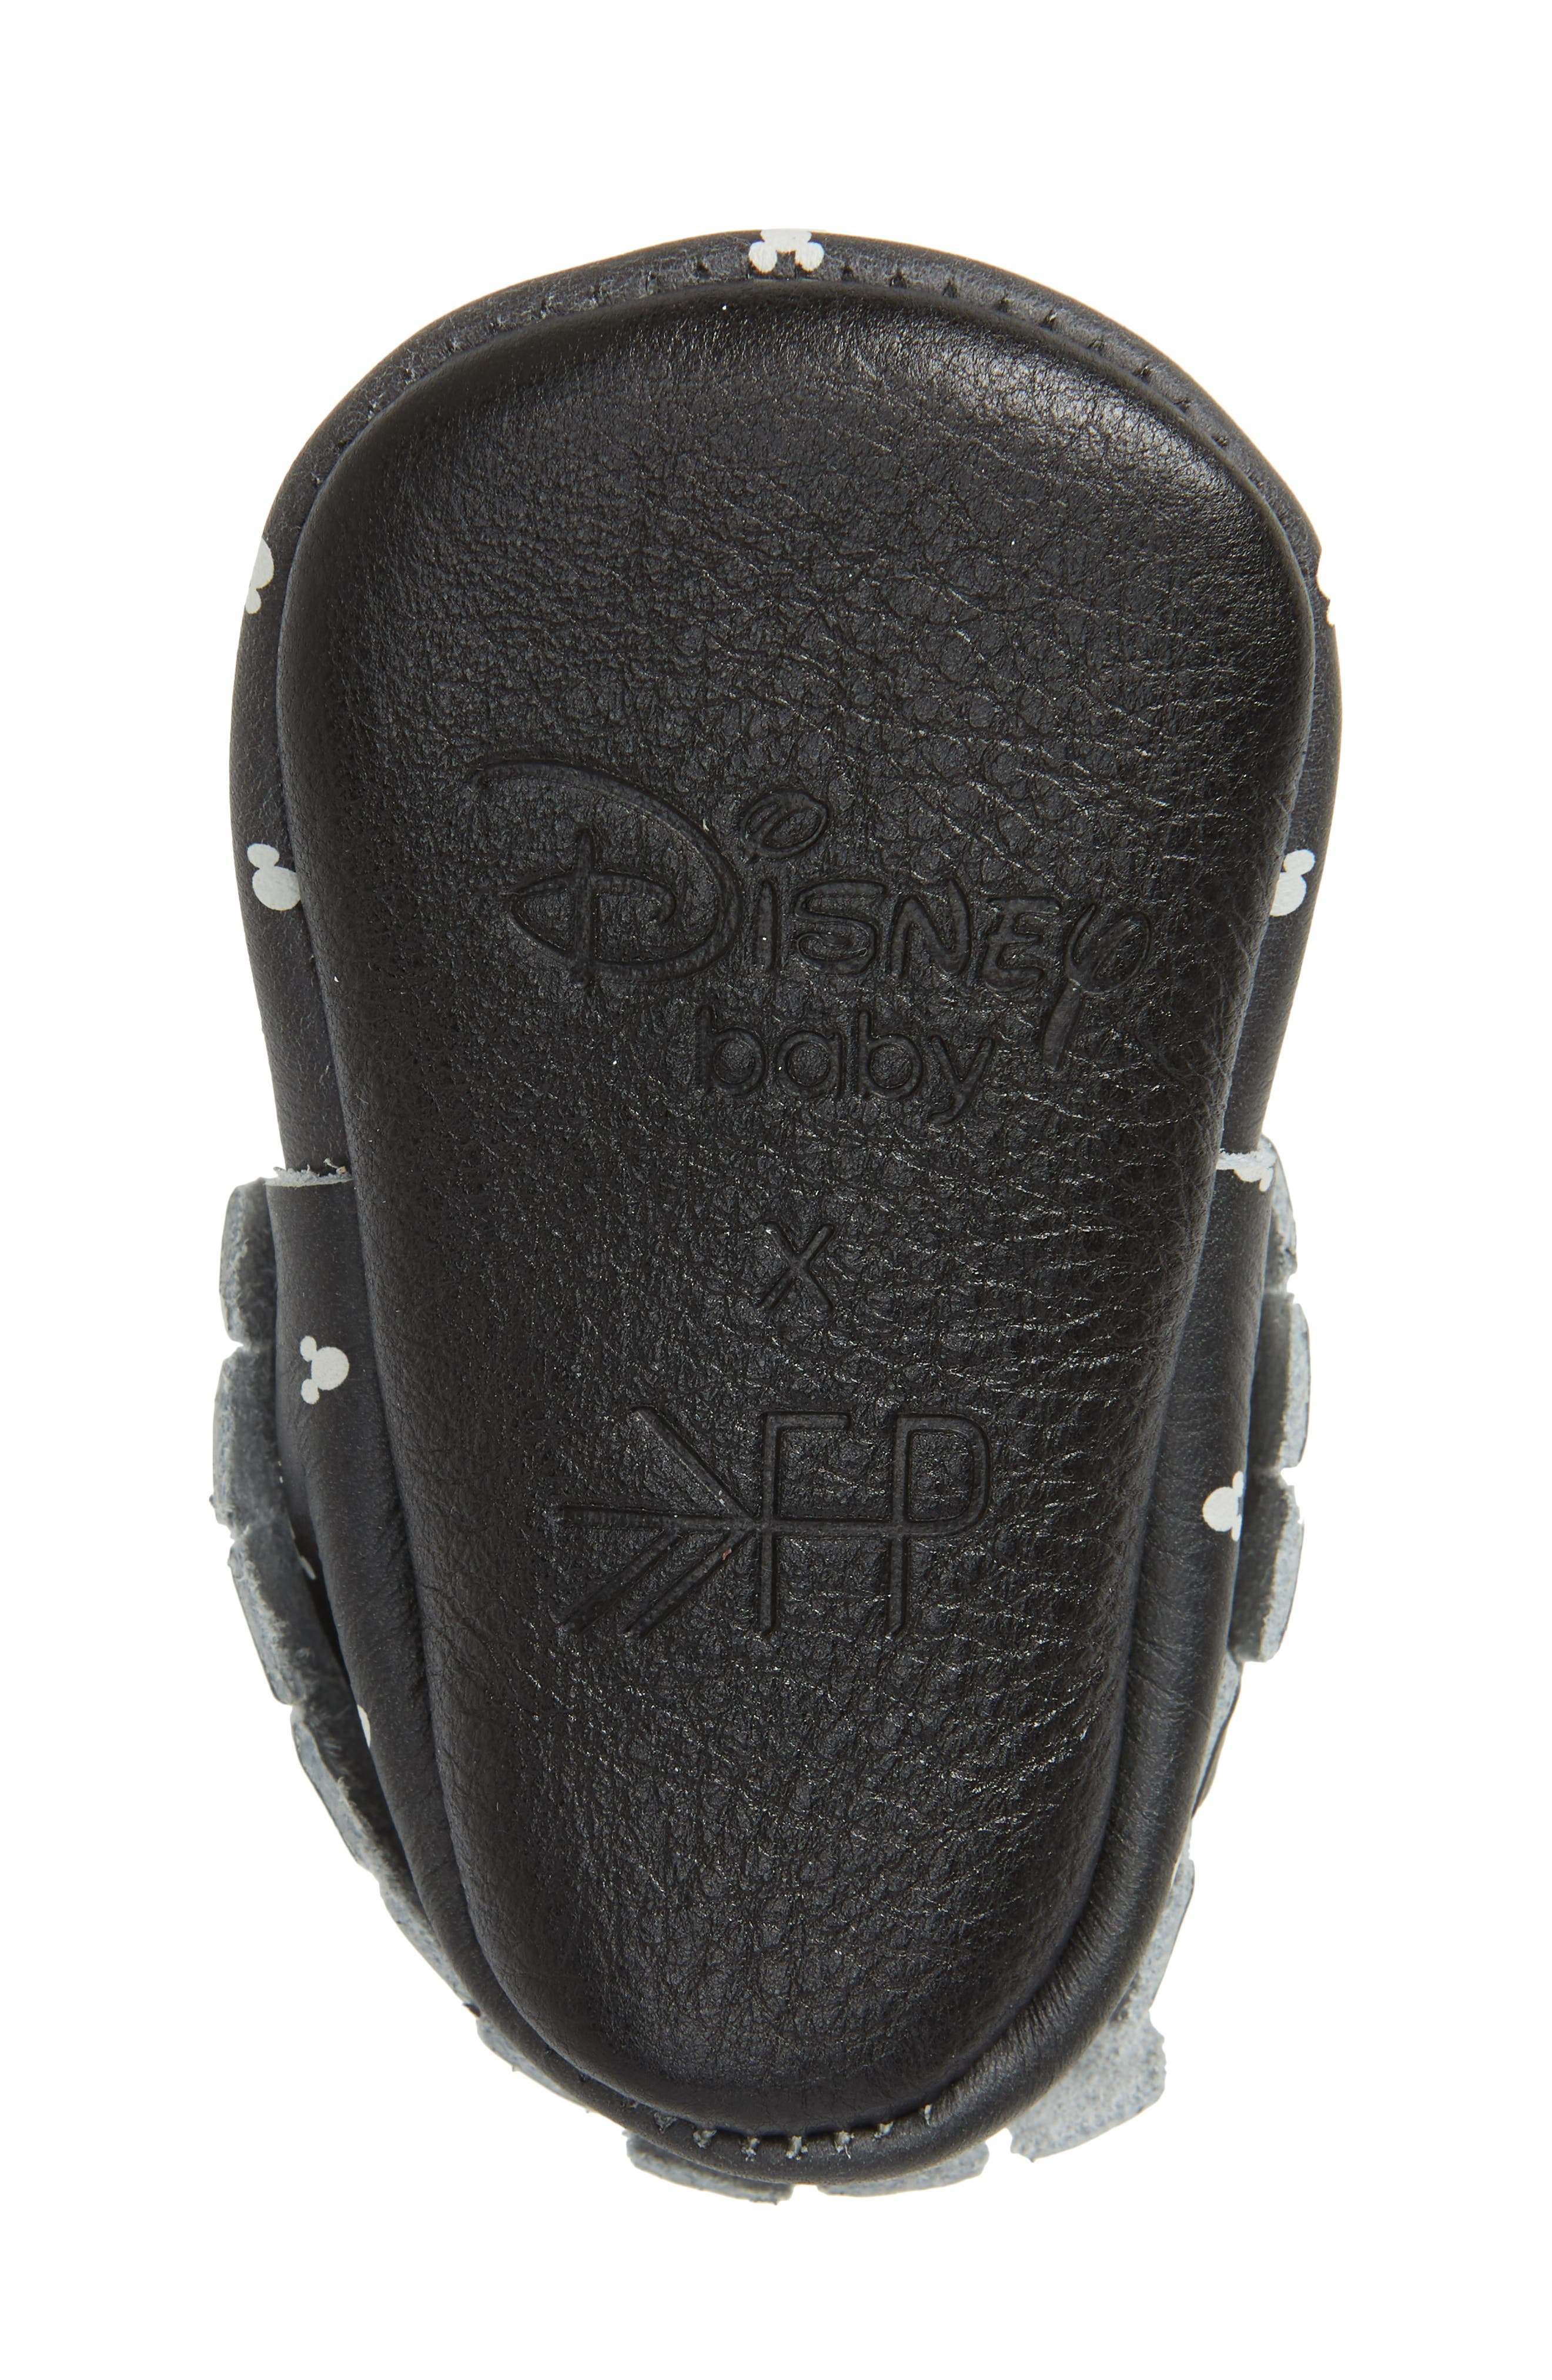 x Disney<sup>®</sup> Mouse Ears Print Moccasin,                             Alternate thumbnail 6, color,                             BLACK LEATHER